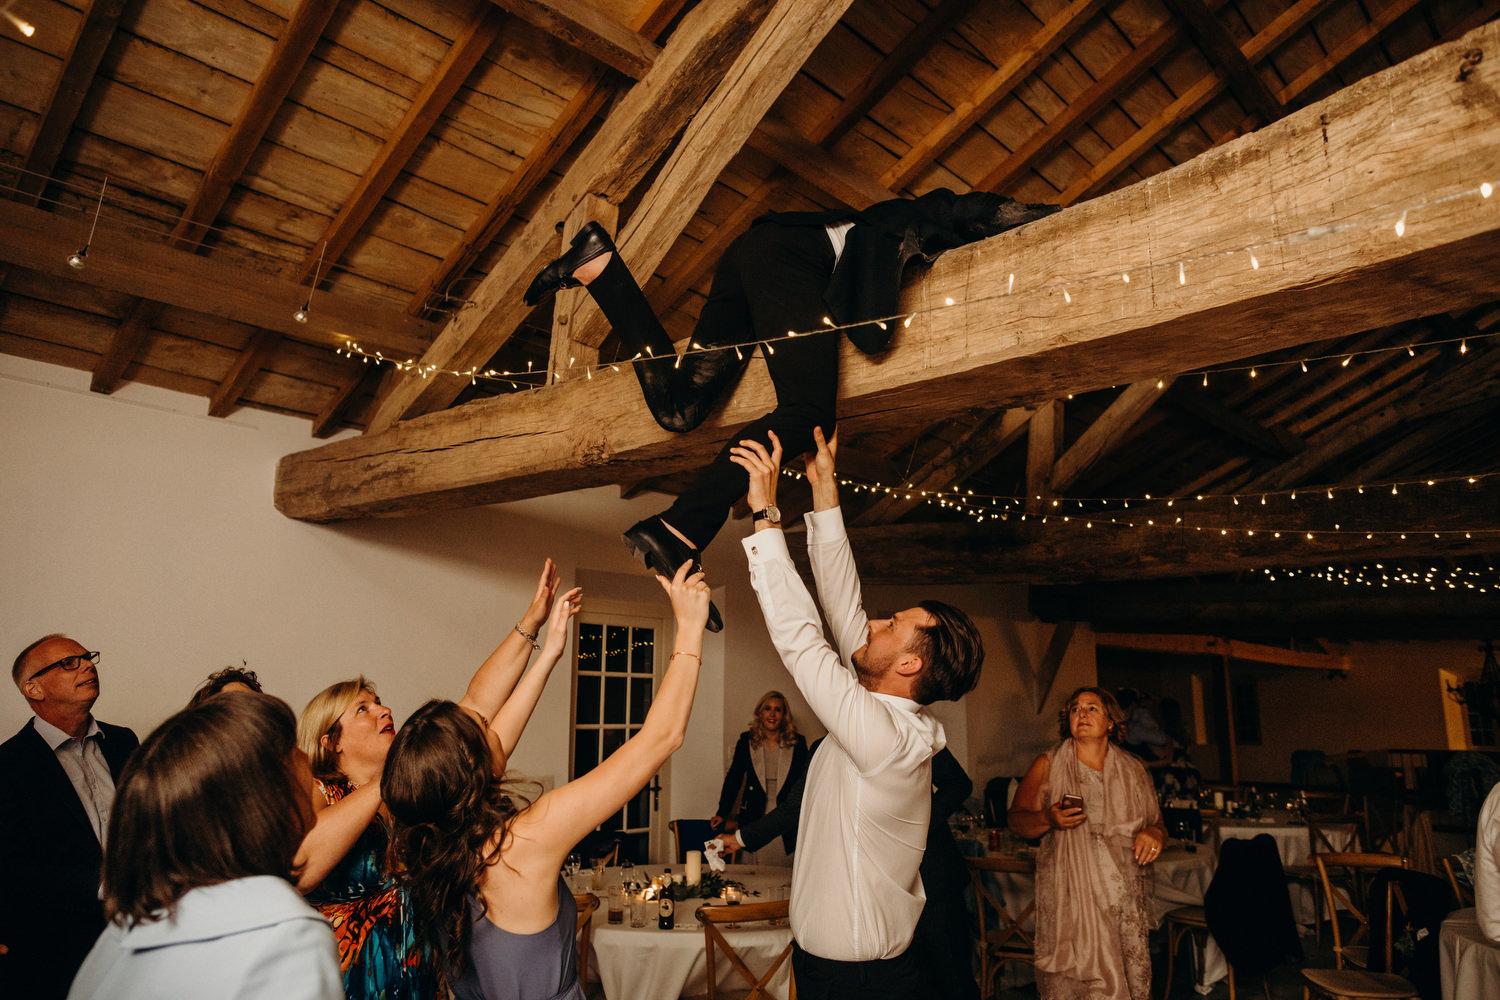 guest climbing beam at wedding